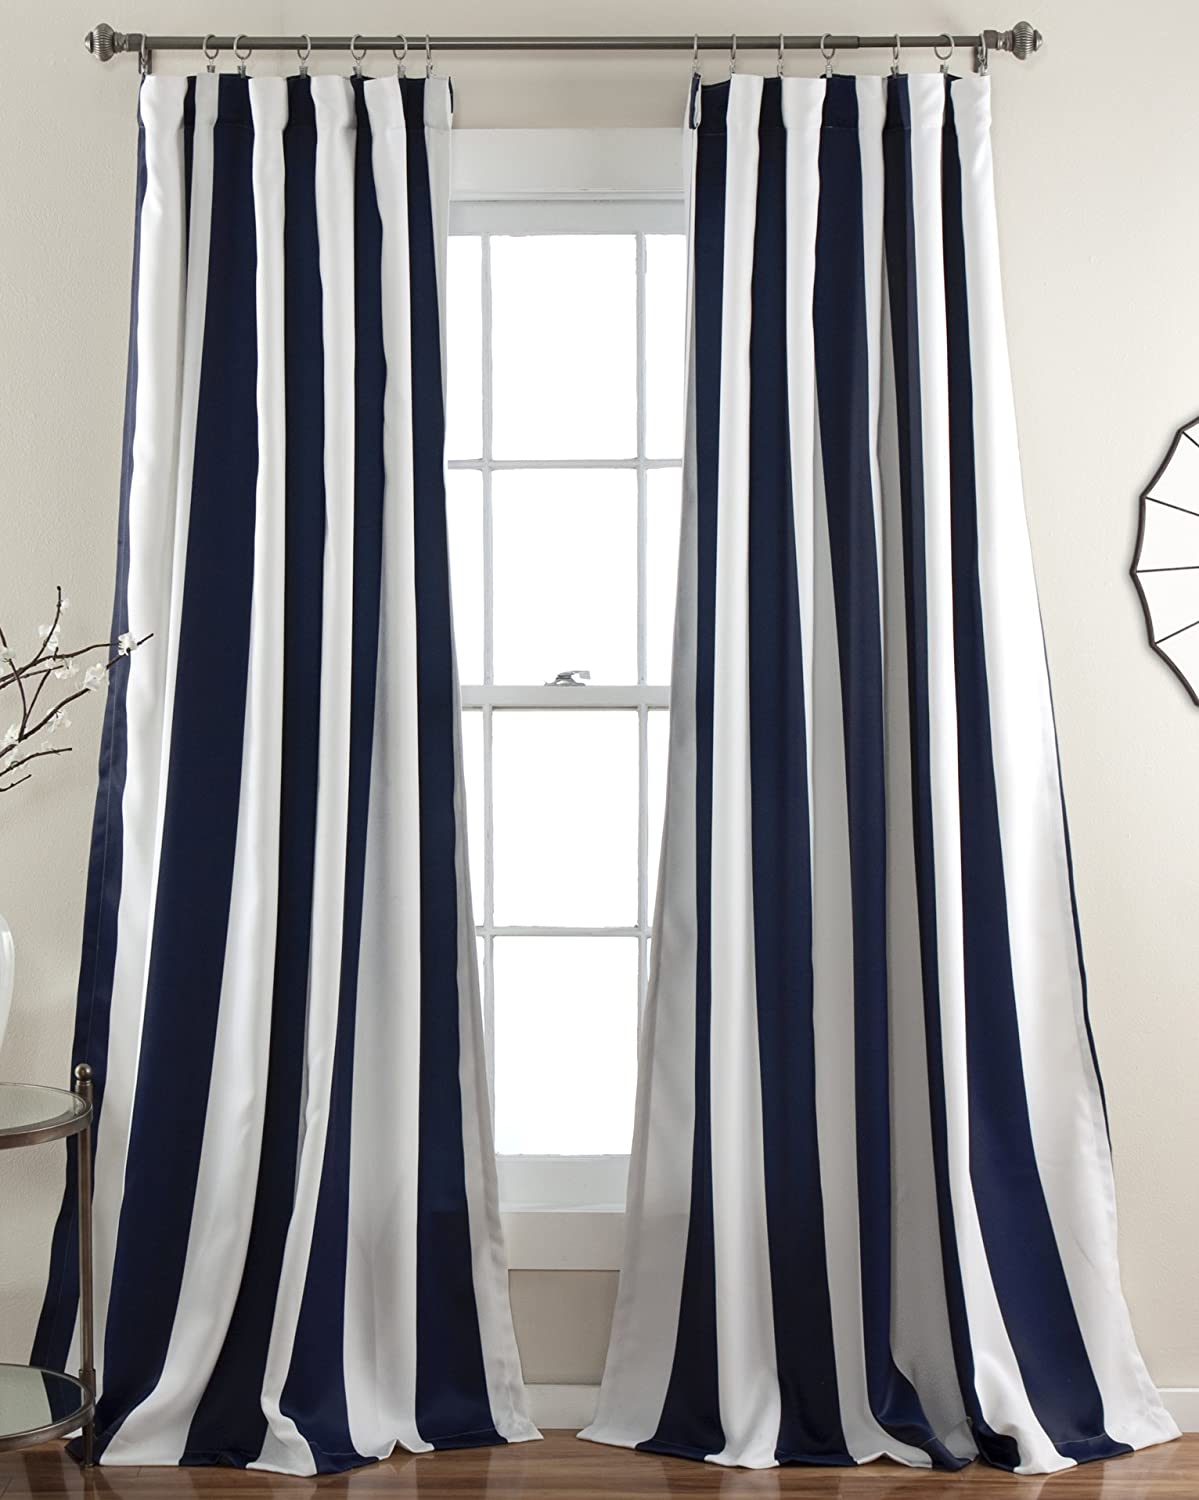 home hei navy sheer essential panel emily p white panels wid curtains window voile prod qlt curtain